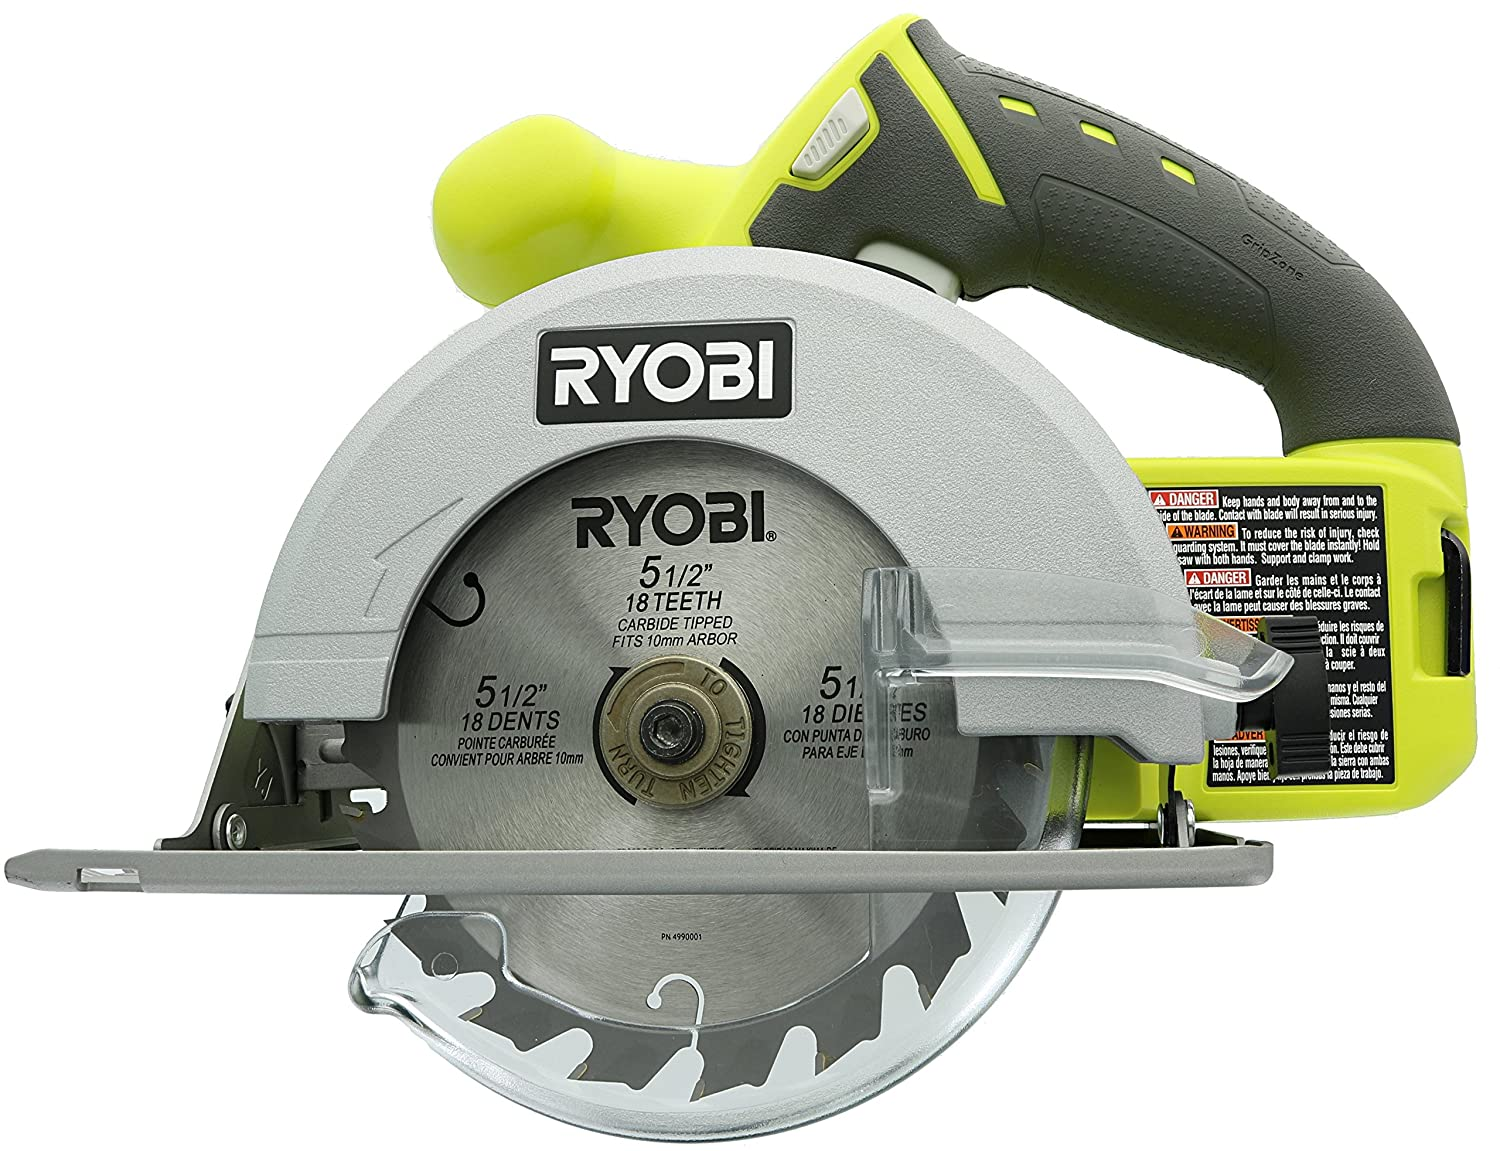 Ryobi p504g one 18 v lithium ion cordless 5 12 inch circular saw w ryobi p504g one 18 v lithium ion cordless 5 12 inch circular saw w carbide tip blade battery not included power tool only power circular saws keyboard keysfo